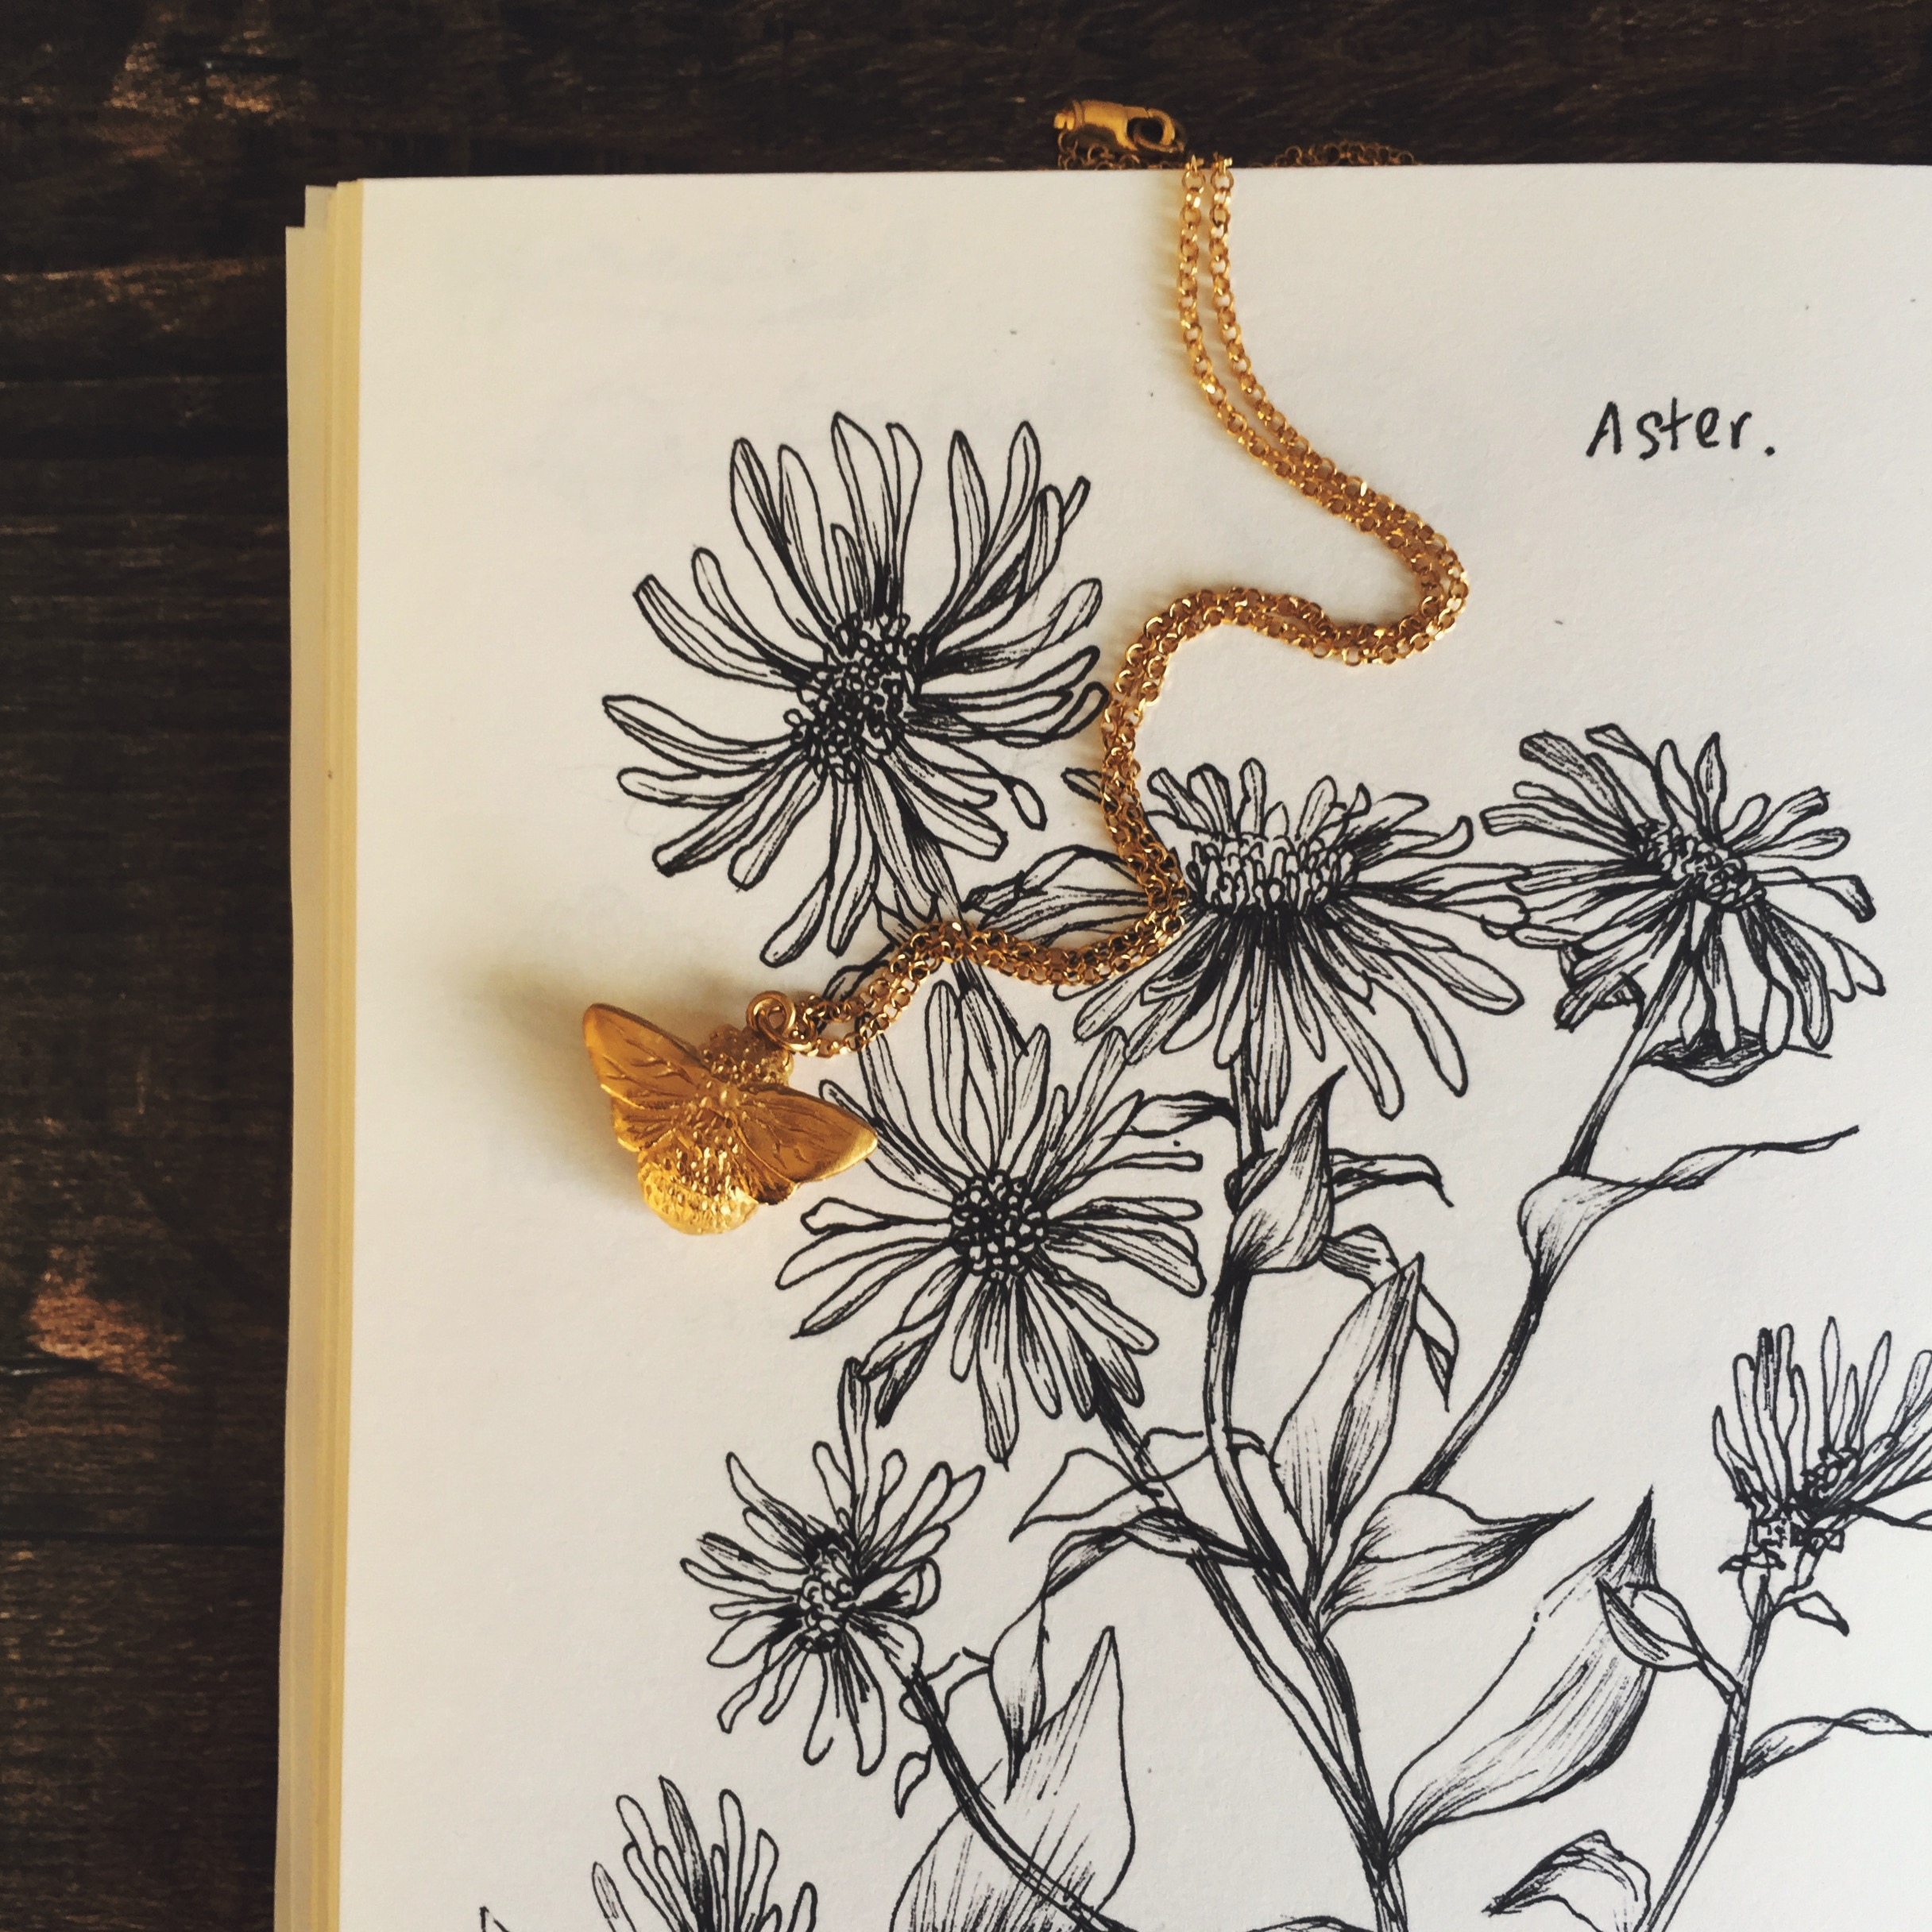 Our buzzy bumblebee necklace against a little sketch of wildflowers.